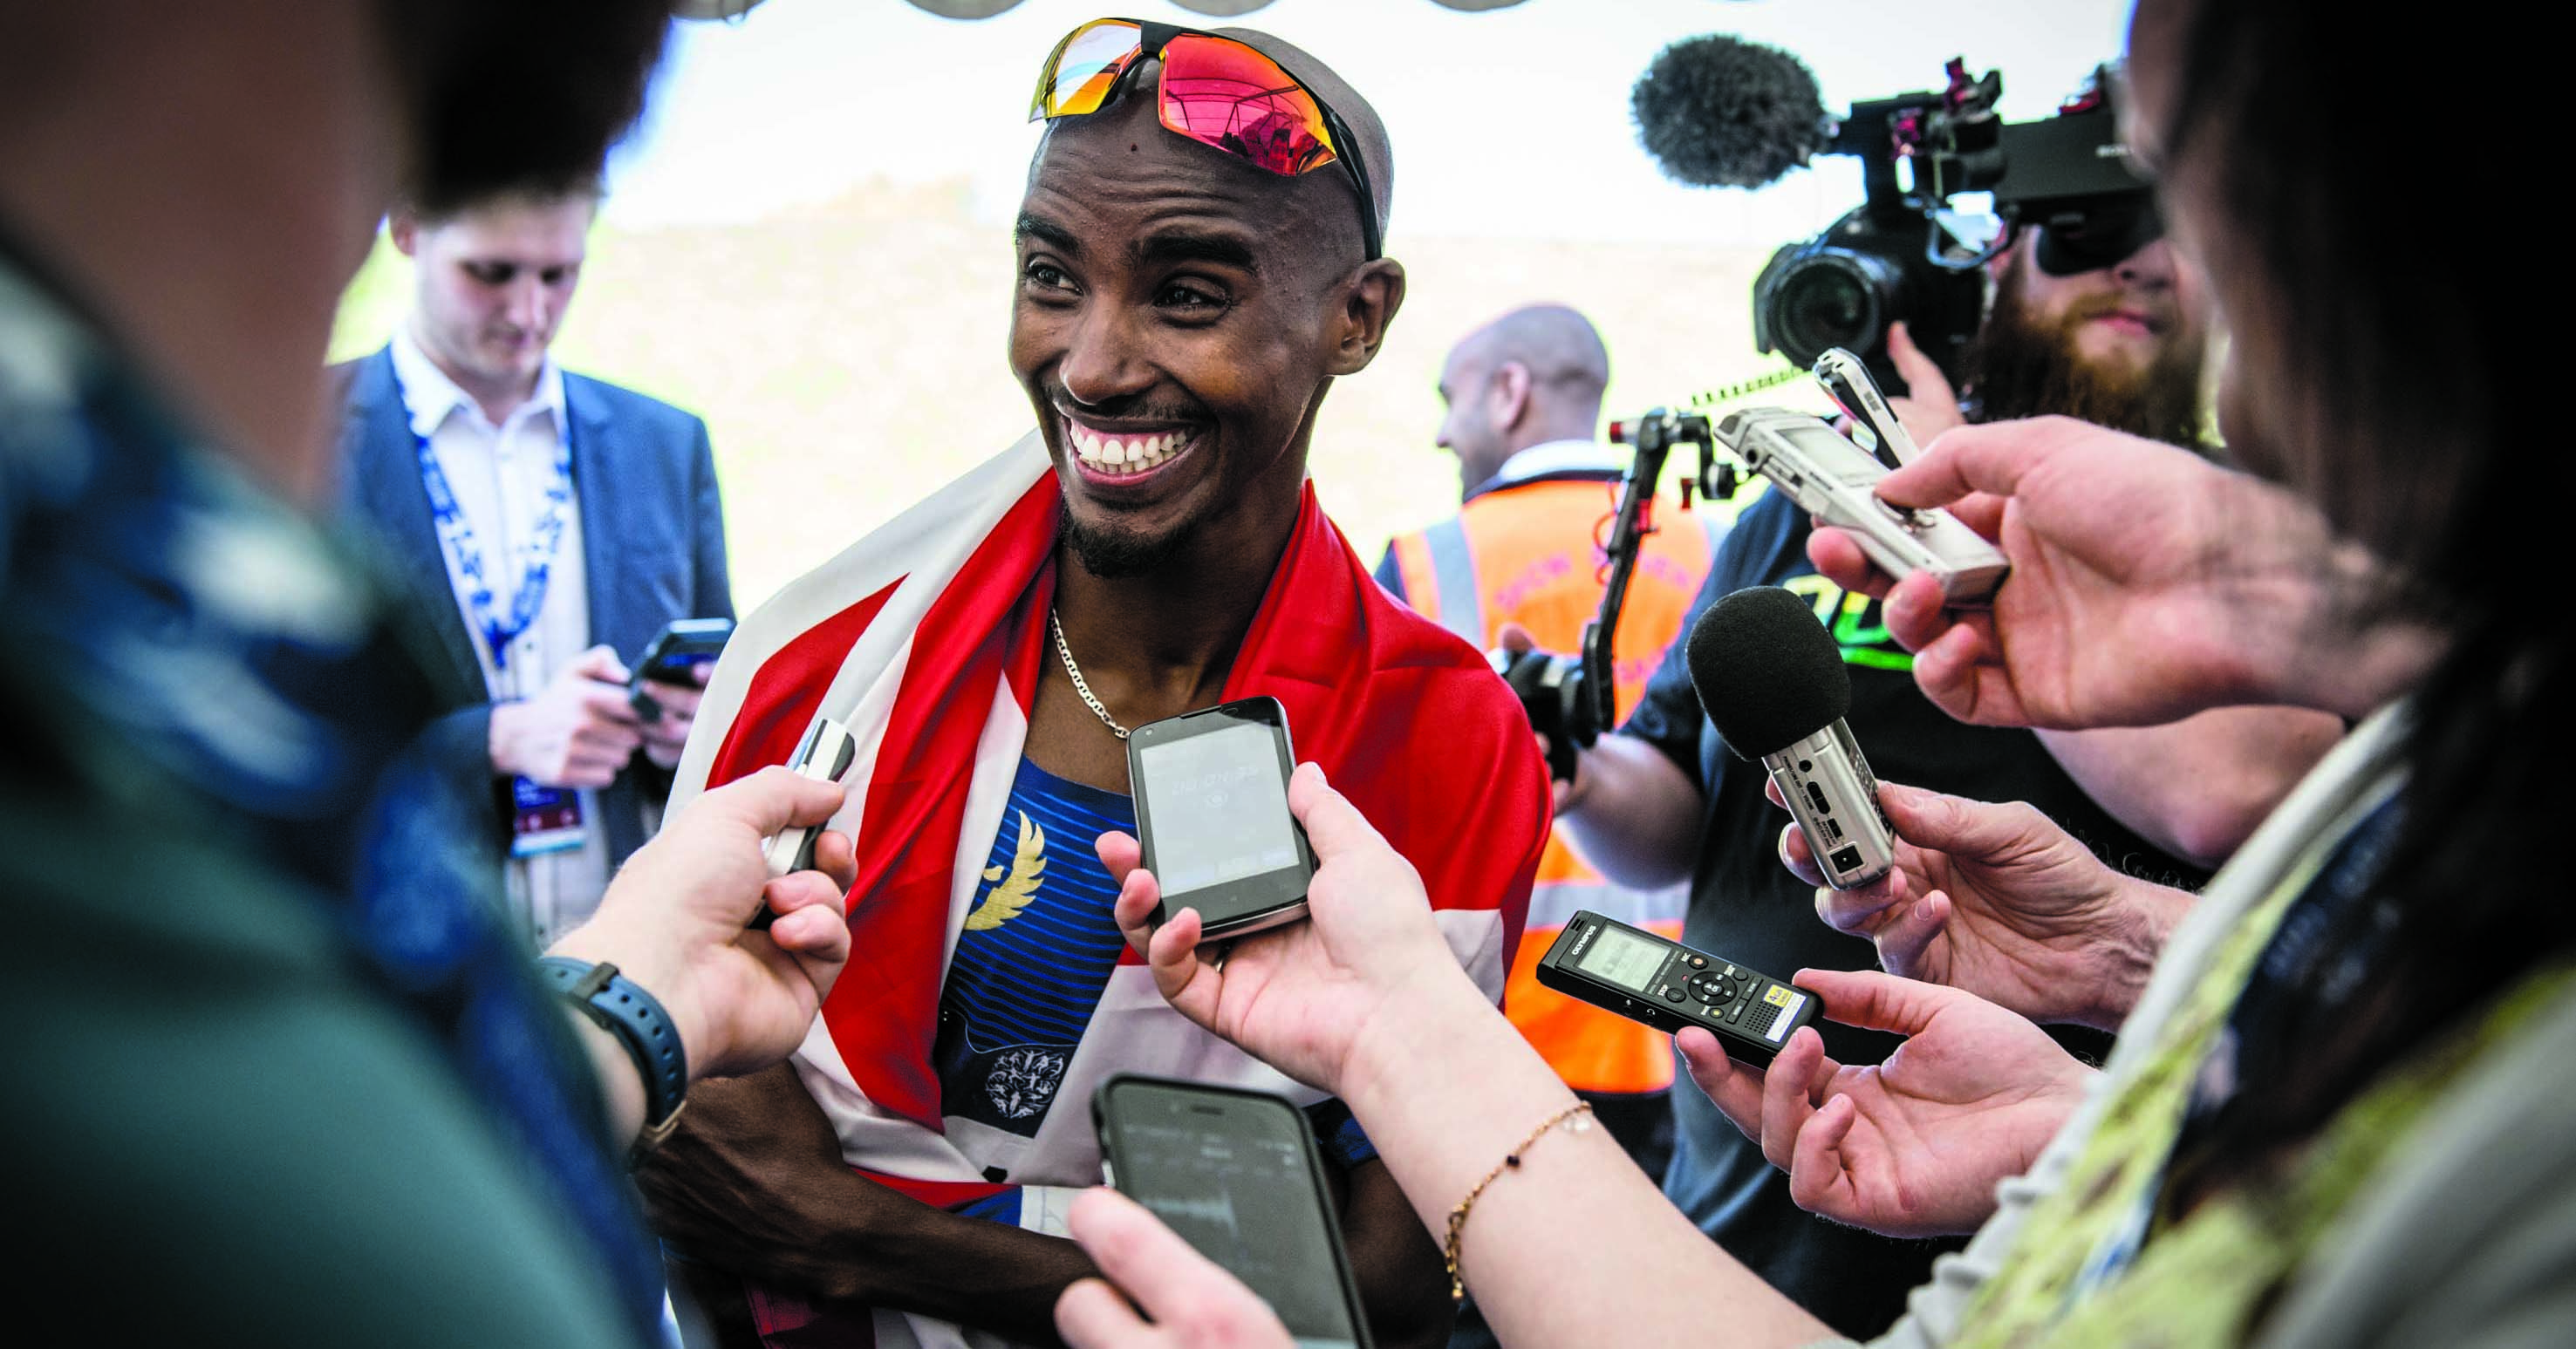 What does it take to be really world class? Mo Farah lifts the lid on his life